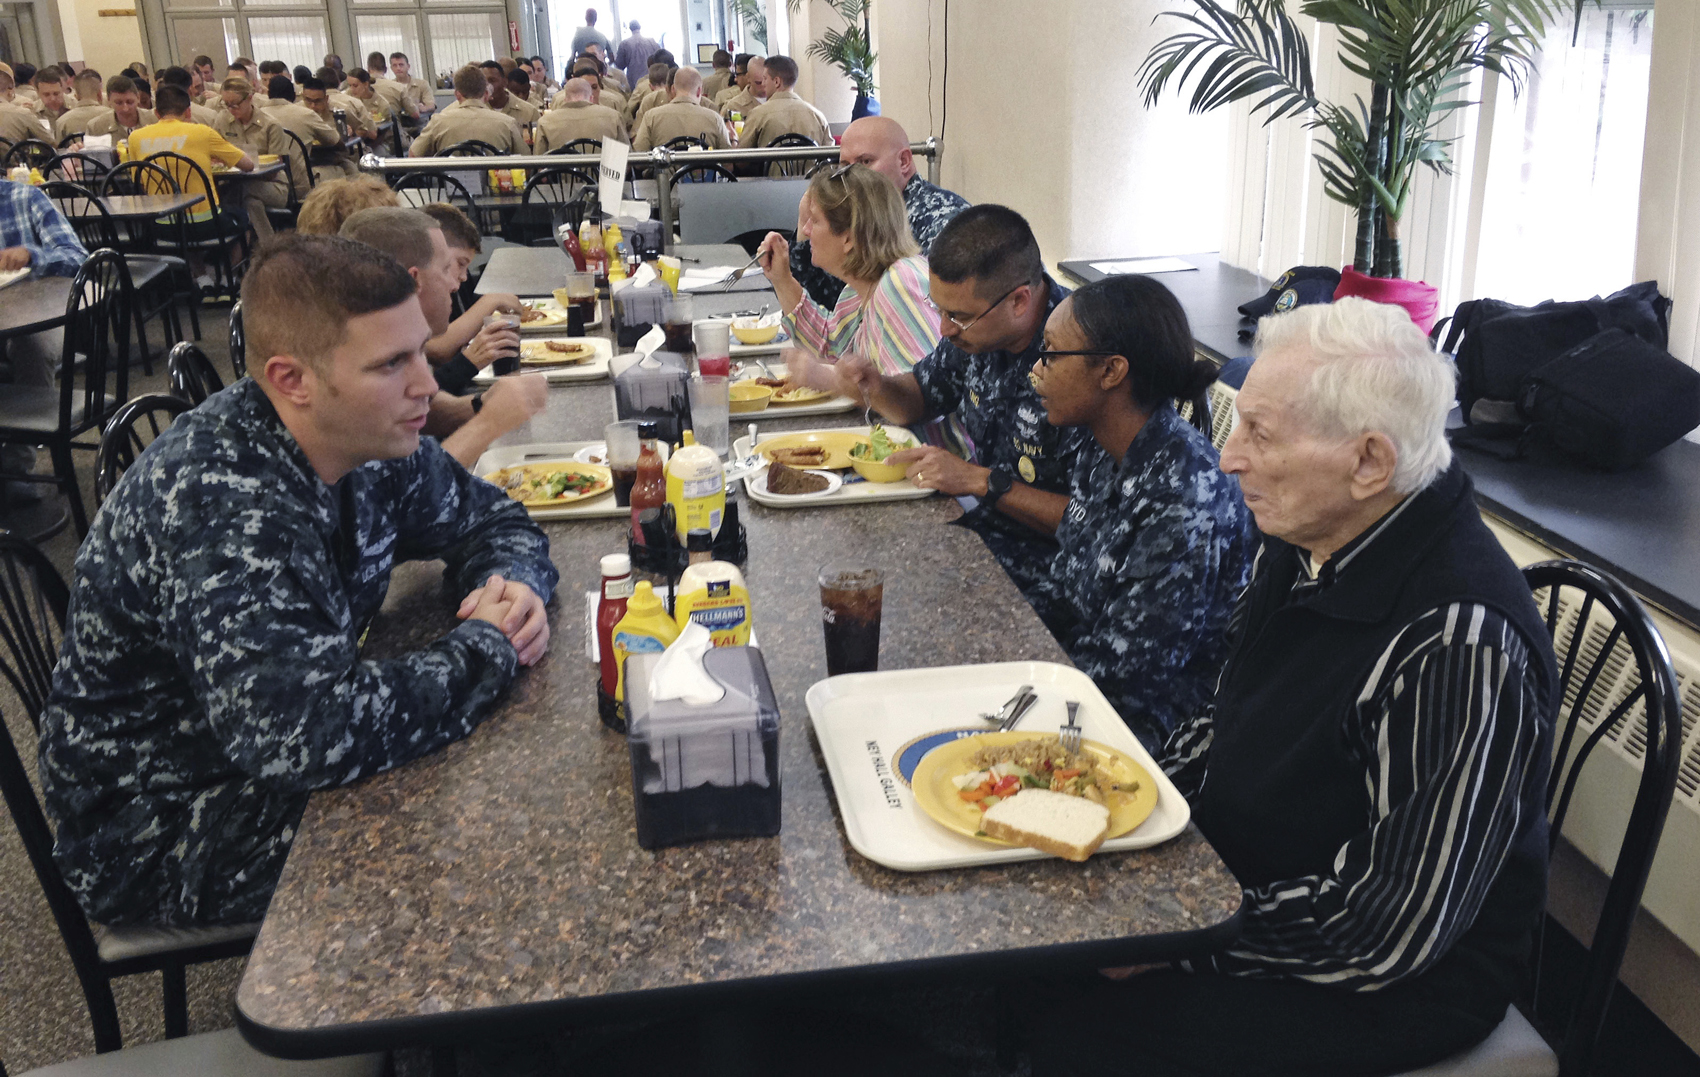 WWII veteran Edmund DelBarone, right, shares stories over lunch with Heath Cruse, left, a cook at the galley during a tour at Naval Station Newport, in Newport, R.I., Thursday July 27, 2017. DelBarone, a 96-year-old World War II veteran, once dreamed of returning to a Navy installation to reminisce about his naval career, and help of a nonprofit it has become a reality. (Jennifer McDermott/AP)